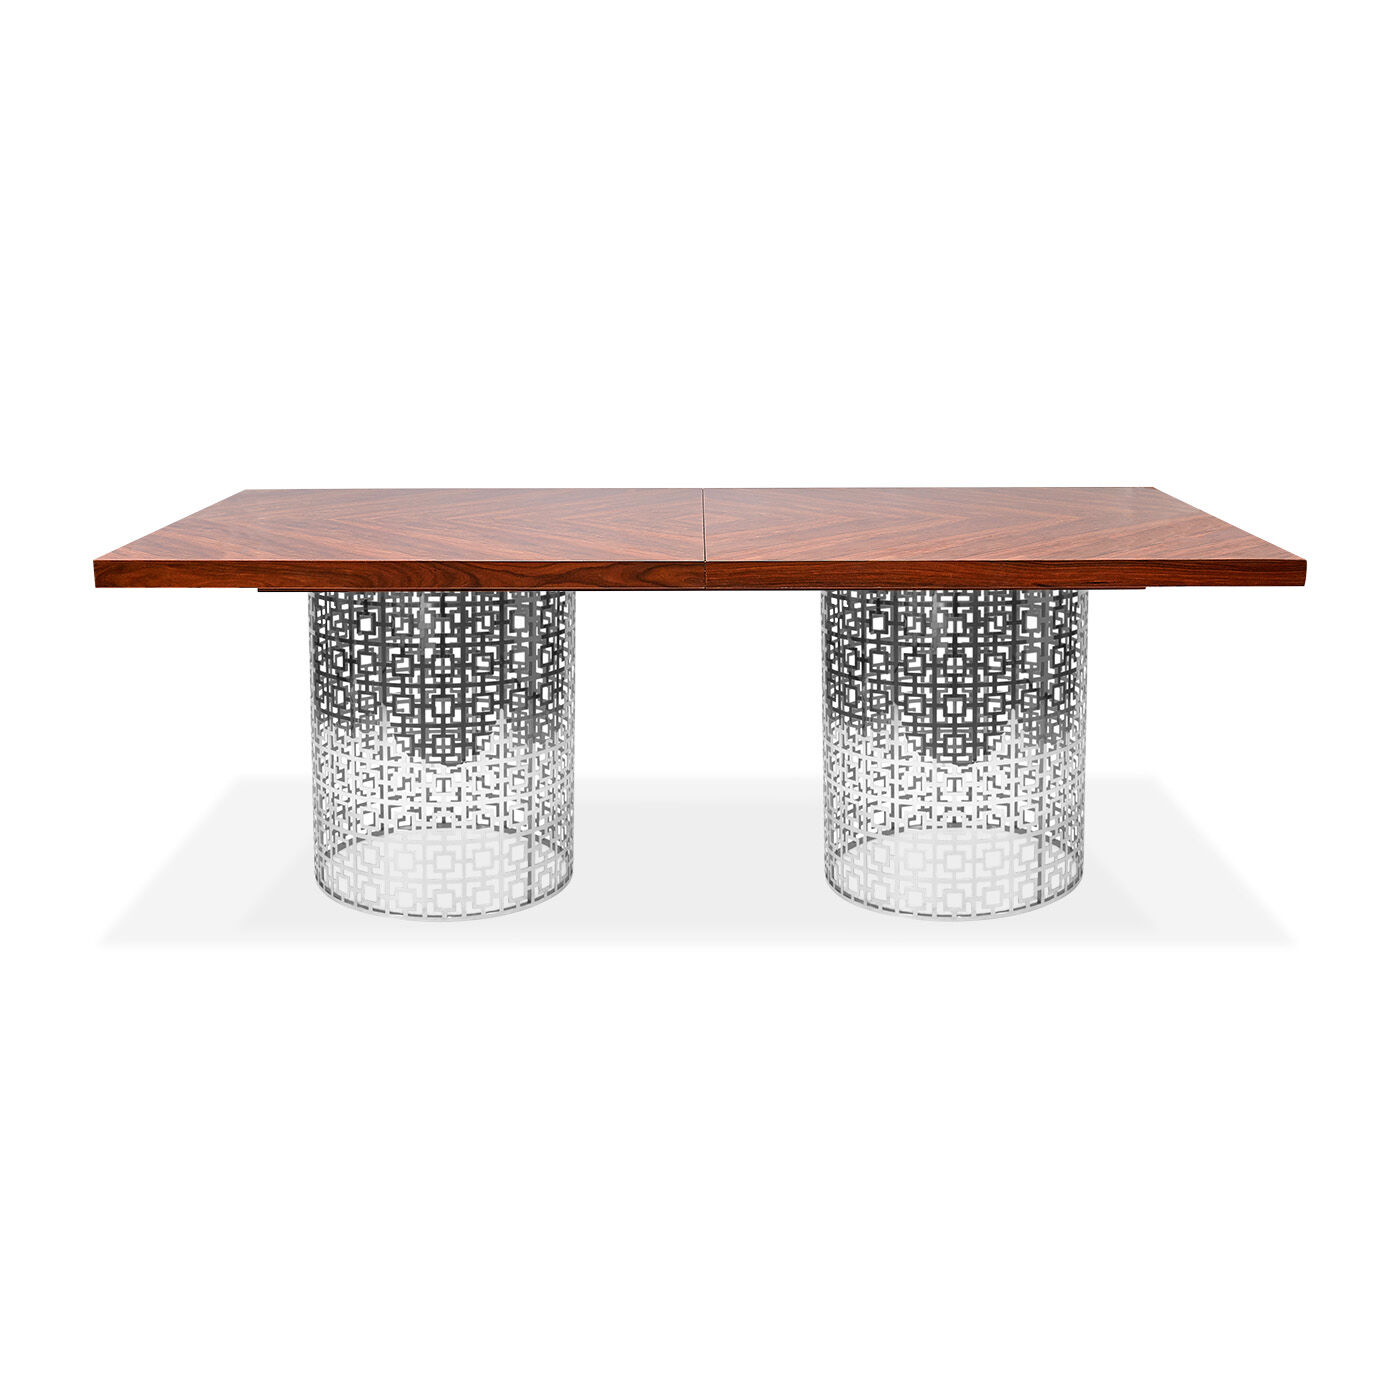 Marvelous Nixon Rosewood And Nickel Dining Table | Modern Furniture | Jonathan Adler